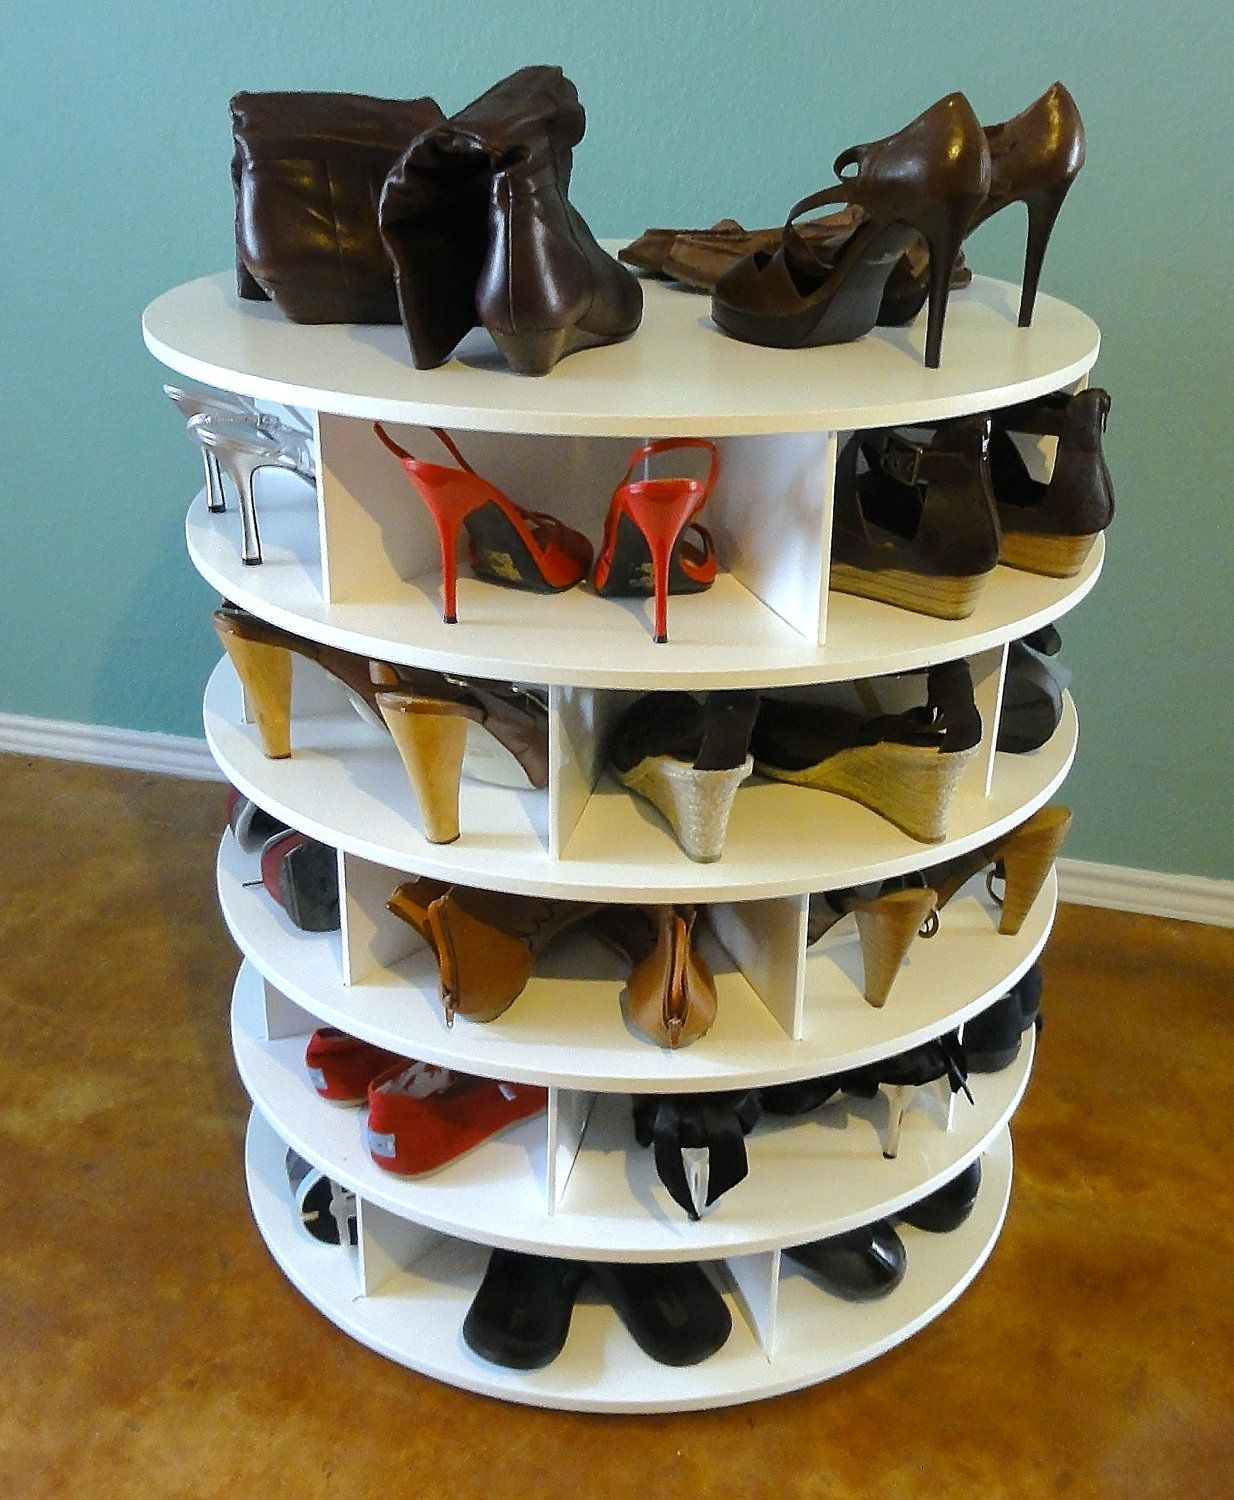 Schuhkarussell ordnung pinterest lazy etsy and rotating shoe rack